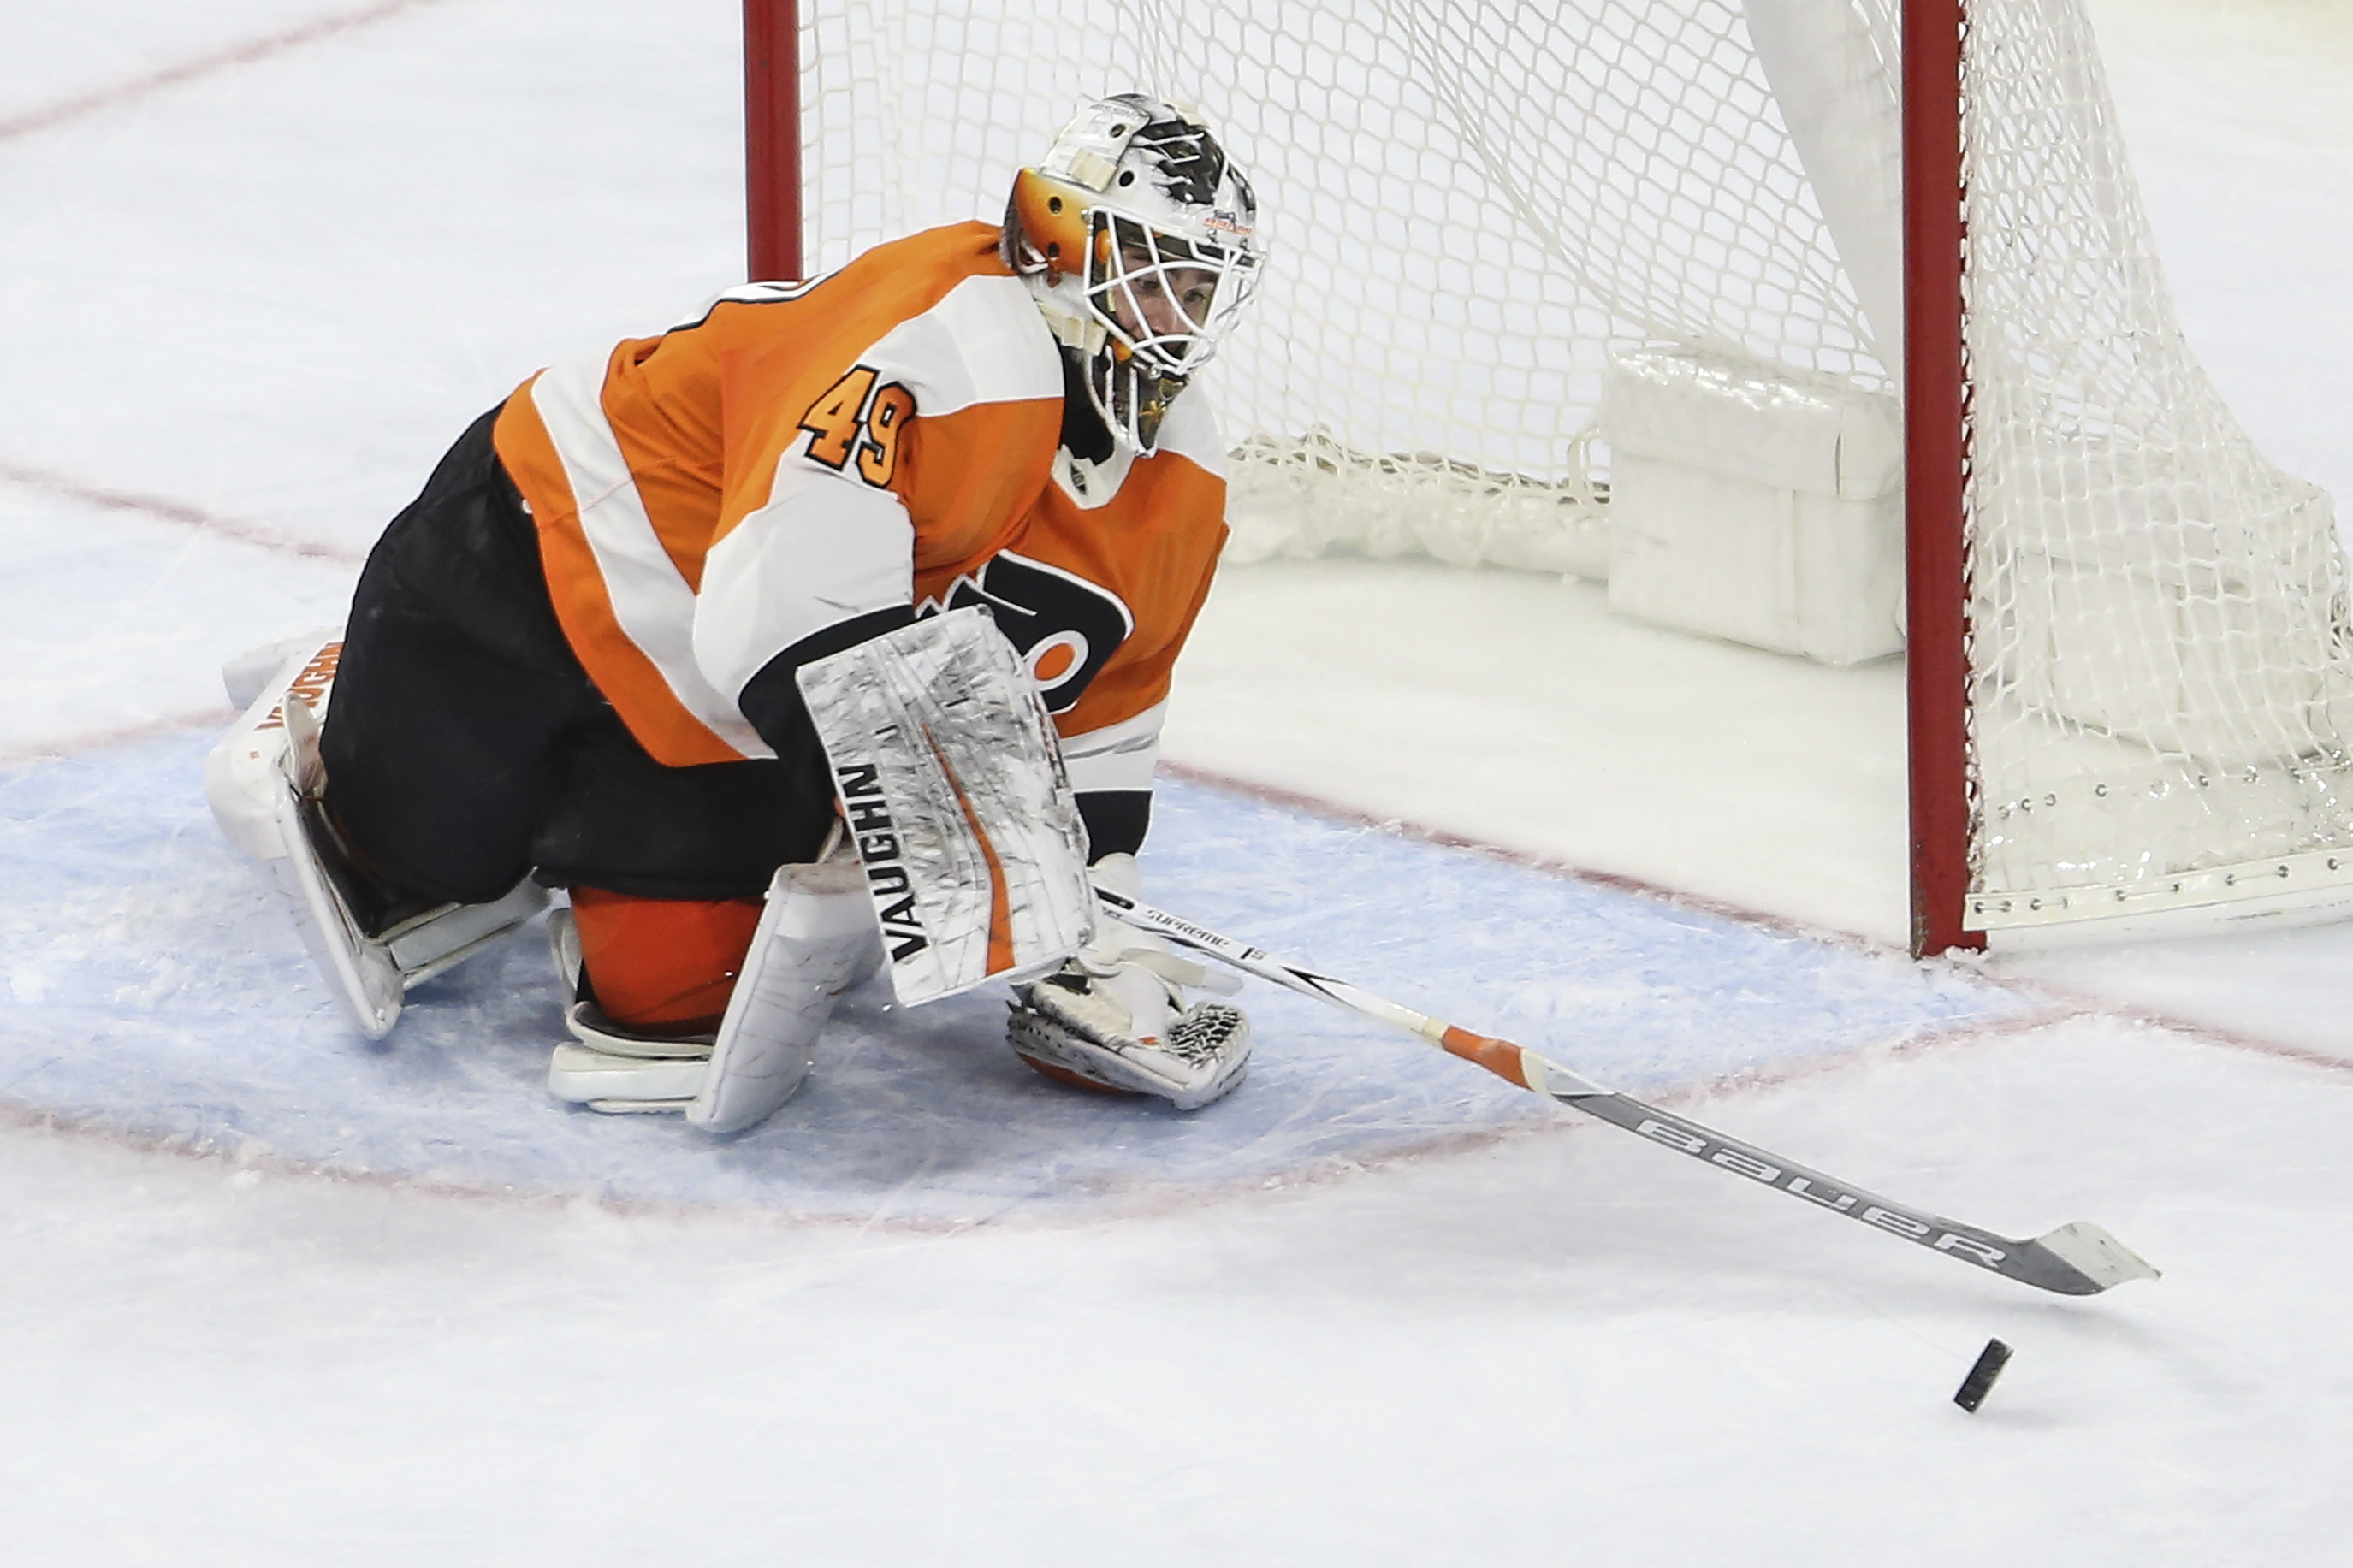 Flyers´ goalie Alex Lyon deflects a shot on goal against the Rangers during the third period at the Wells Fargo Center in Philadelphia, Thursday, March 22, 2018. Flyers beat the Rangers 4-3.